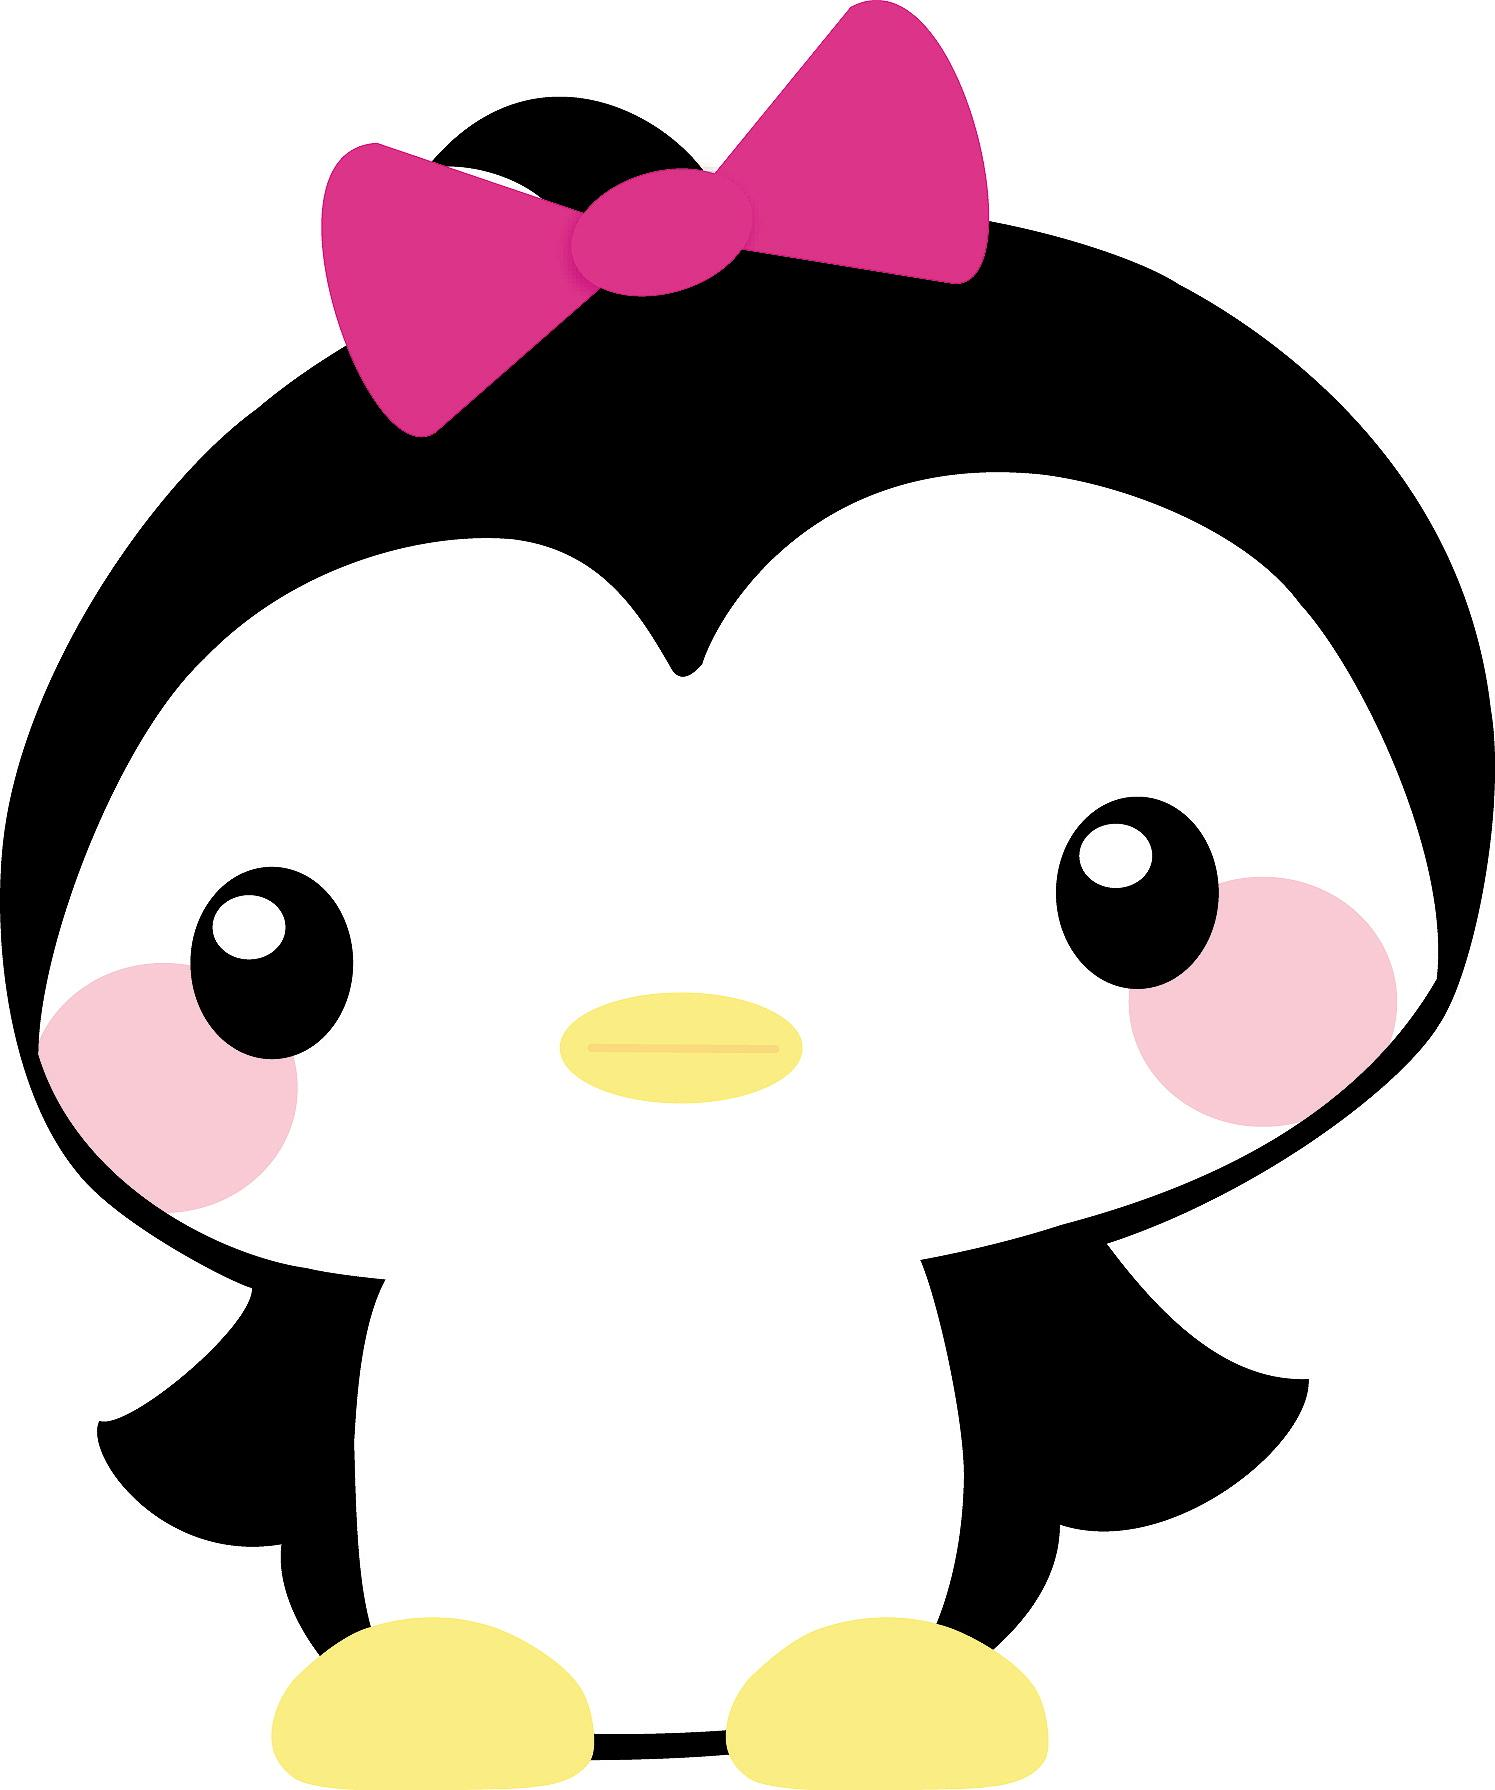 1495x1790 Best 15 Panda Clipart Girly Photos